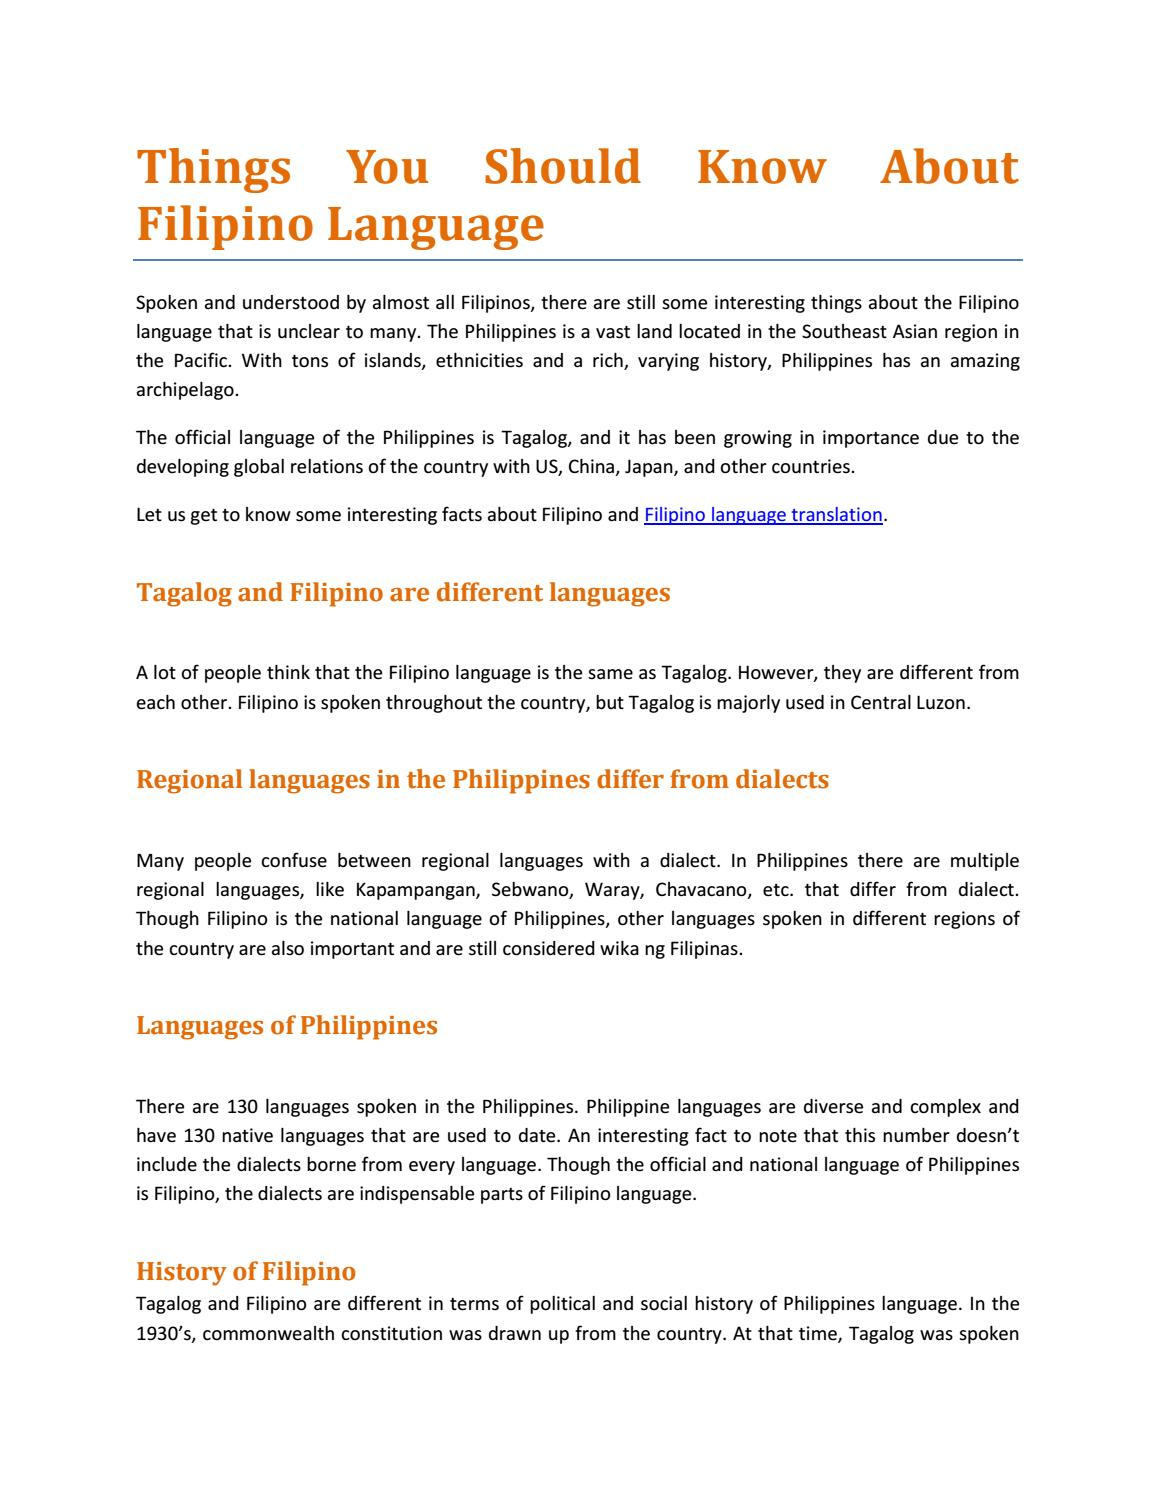 Things You Should Know About Filipino Language By Language Oasis